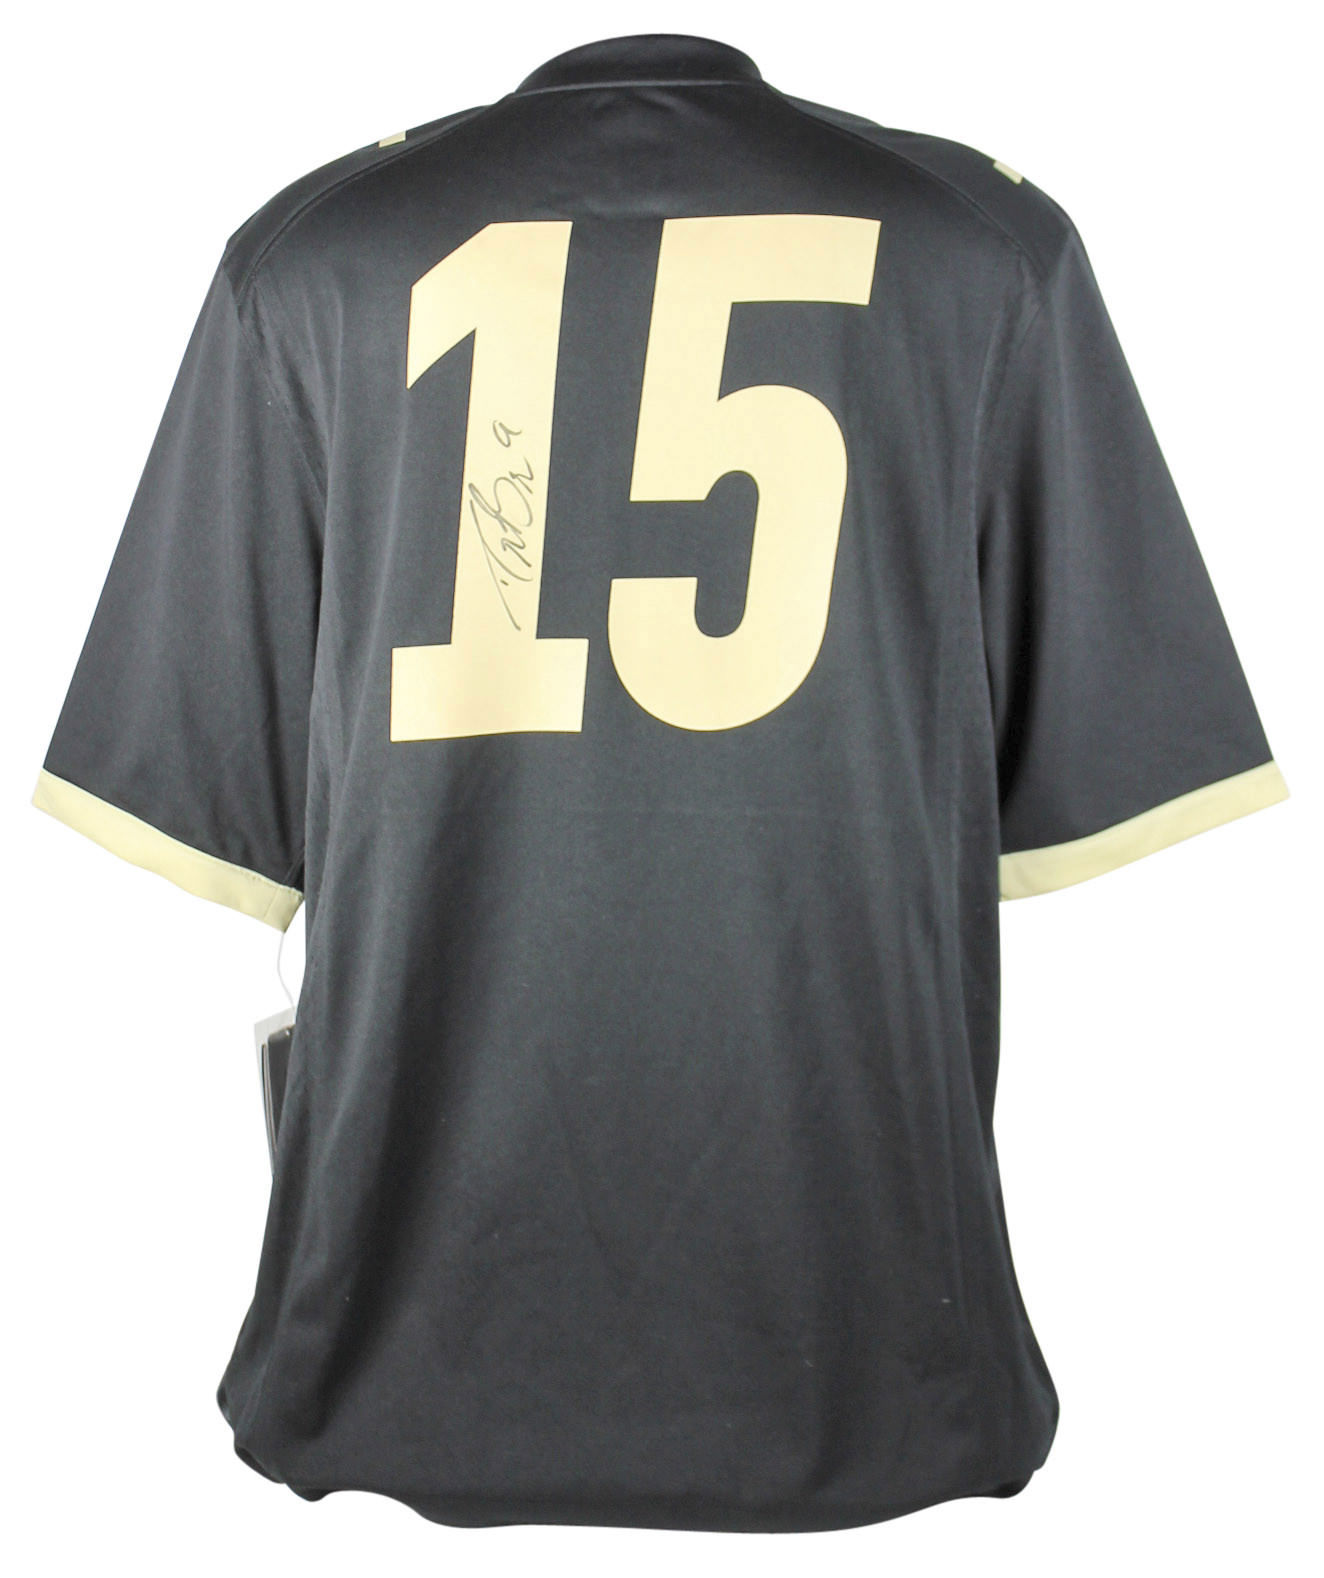 new concept 4af2e 100e5 Lot Detail - Drew Brees Signed Nike Purdue University Jersey ...